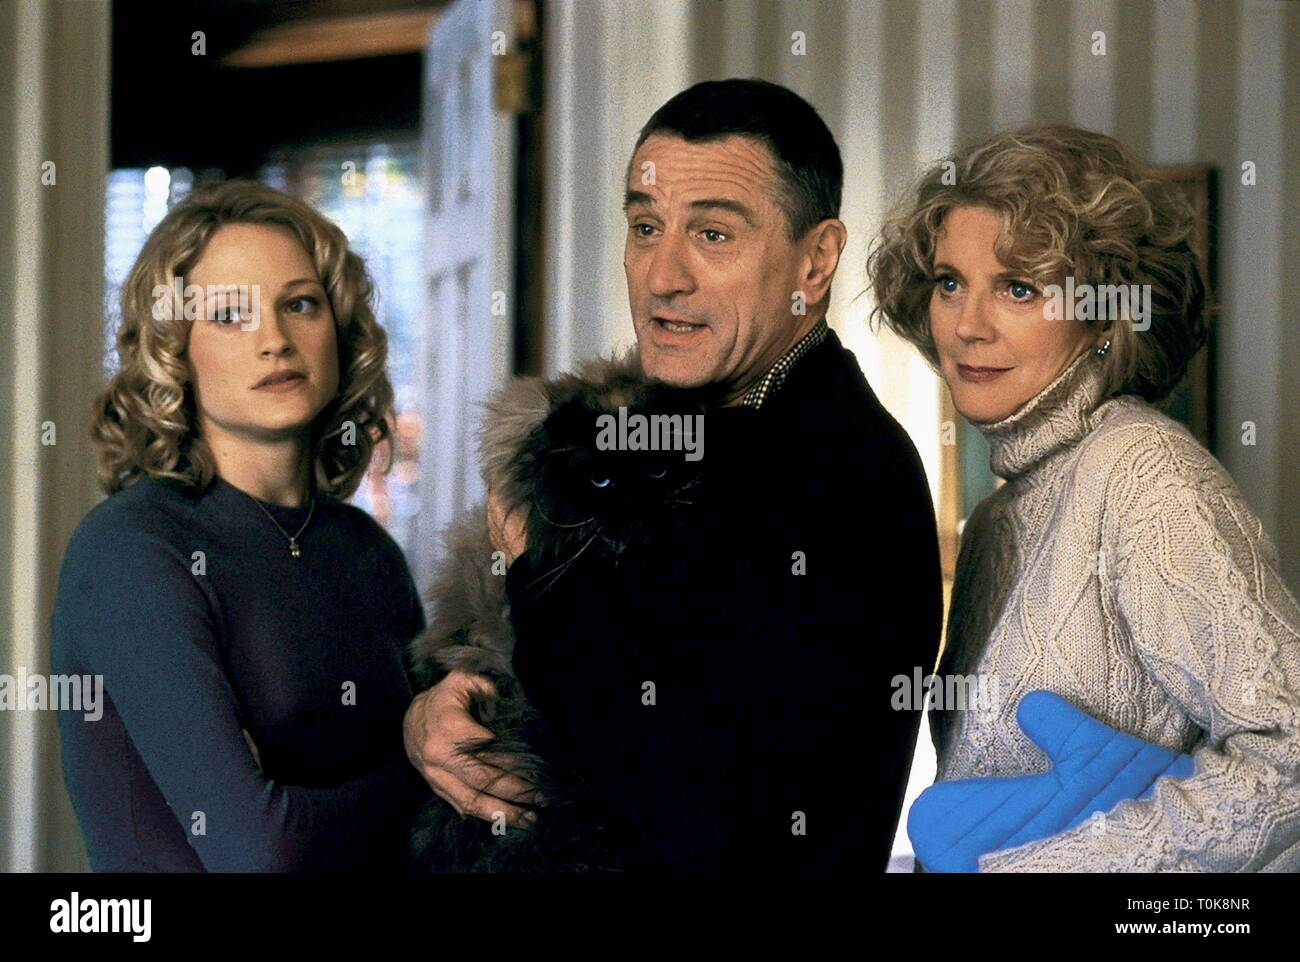 TERI POLO, ROBERT DE NIRO, BLYTHE DANNER, MEET THE PARENTS, 2000 Stock Photo